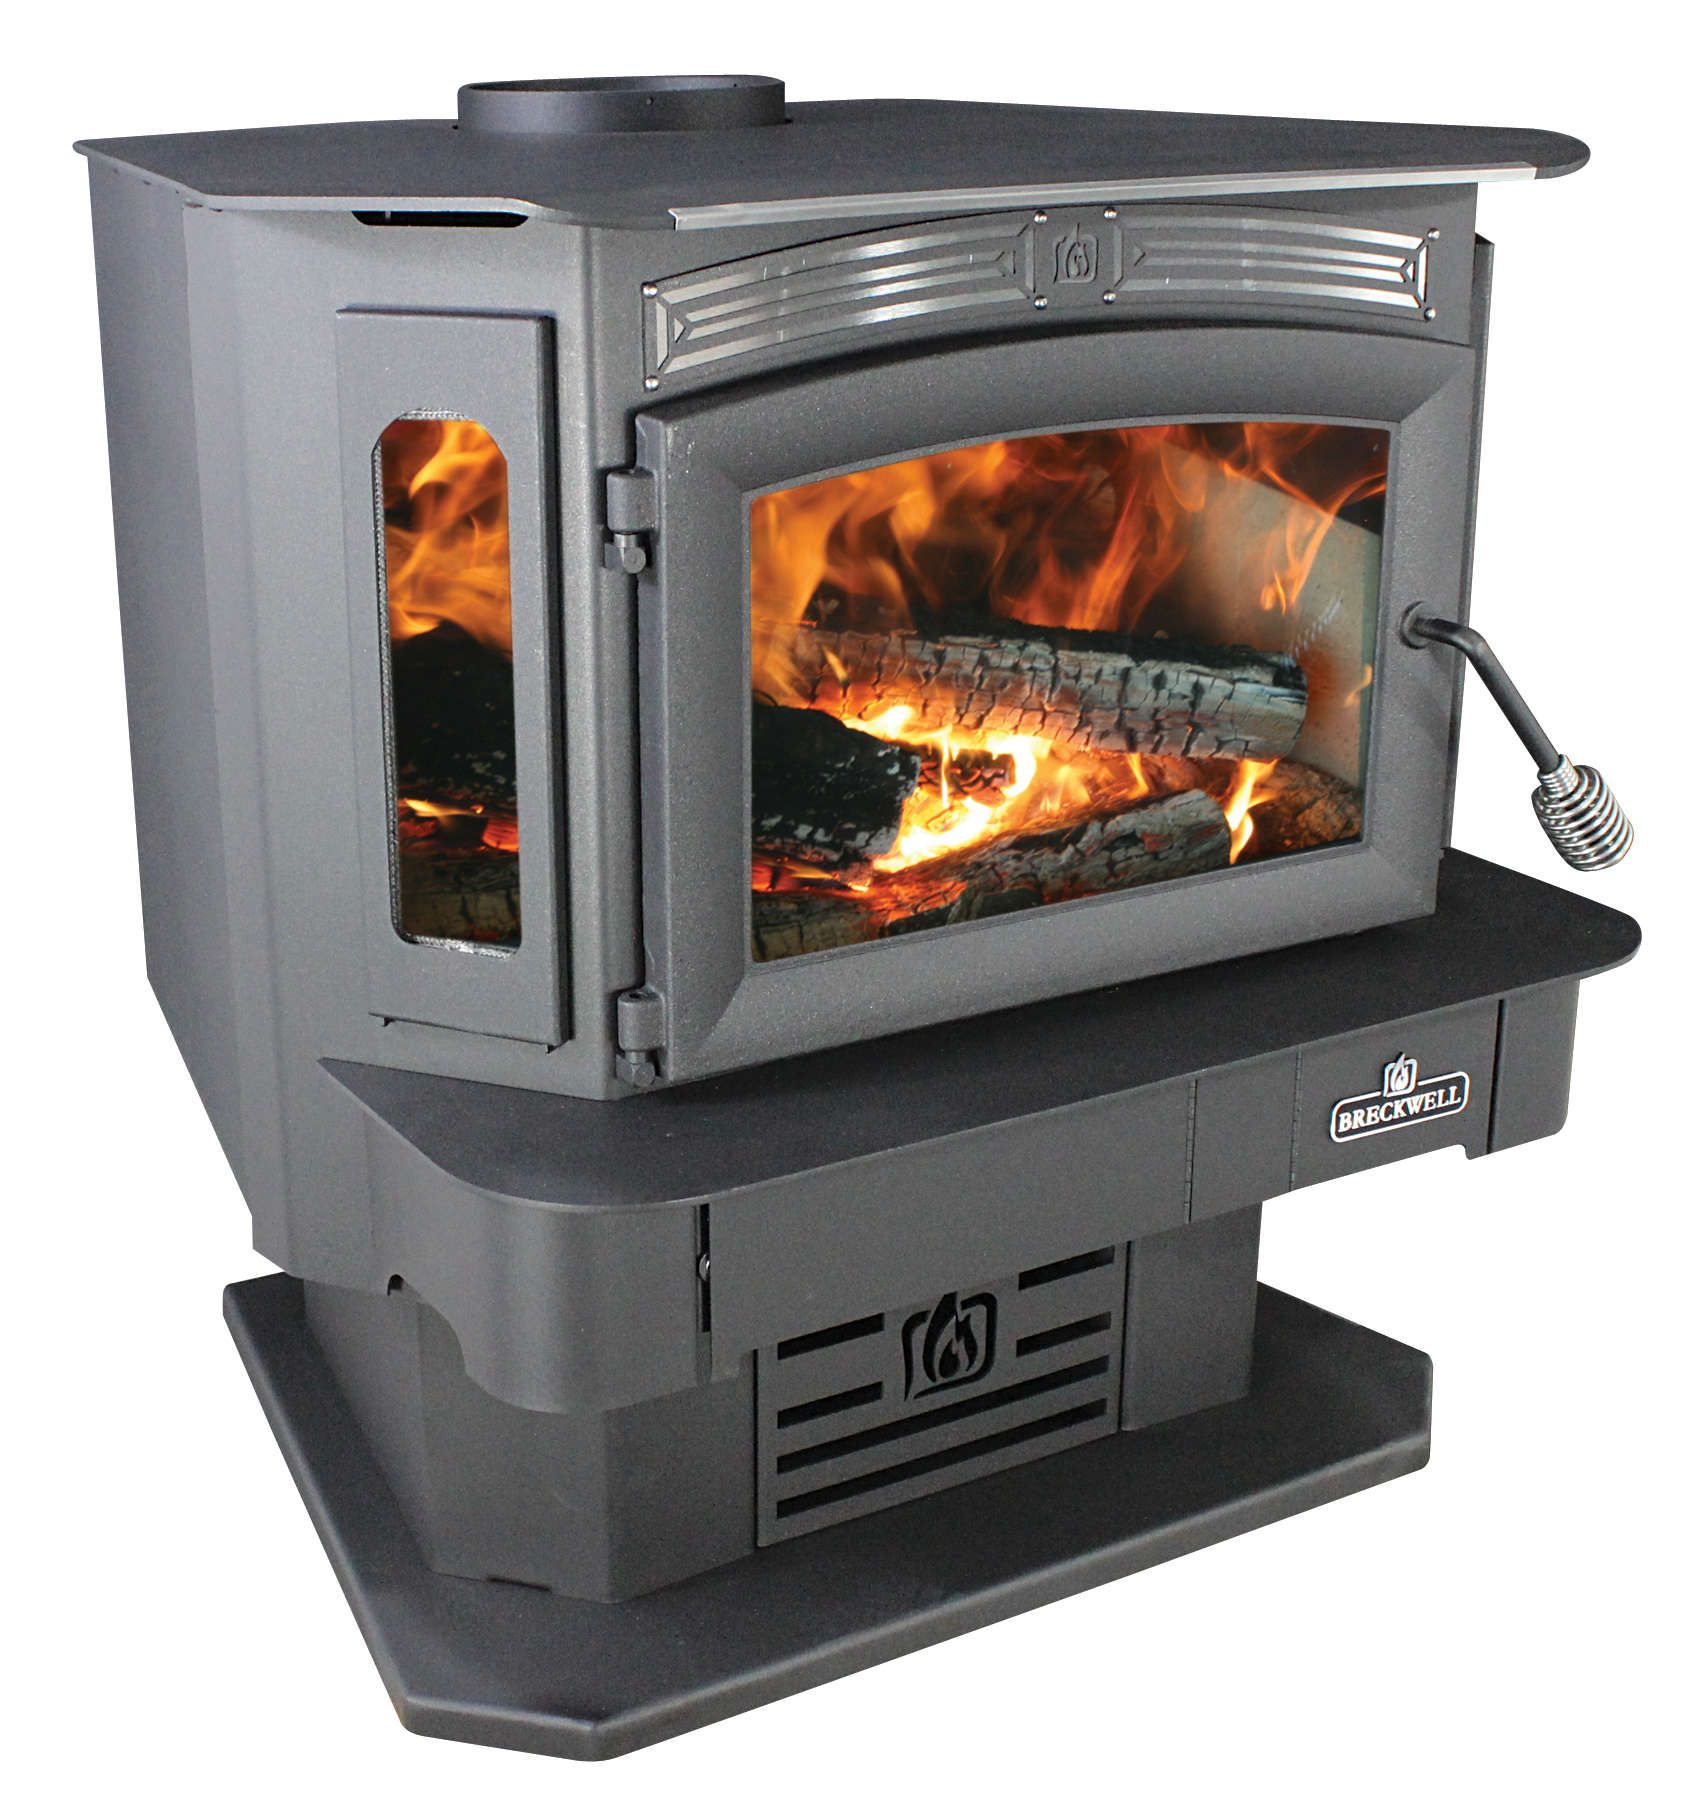 SW940P angle left wood burning stove repair & replacement parts online buck stove clayton wood furnace wiring diagram at couponss.co